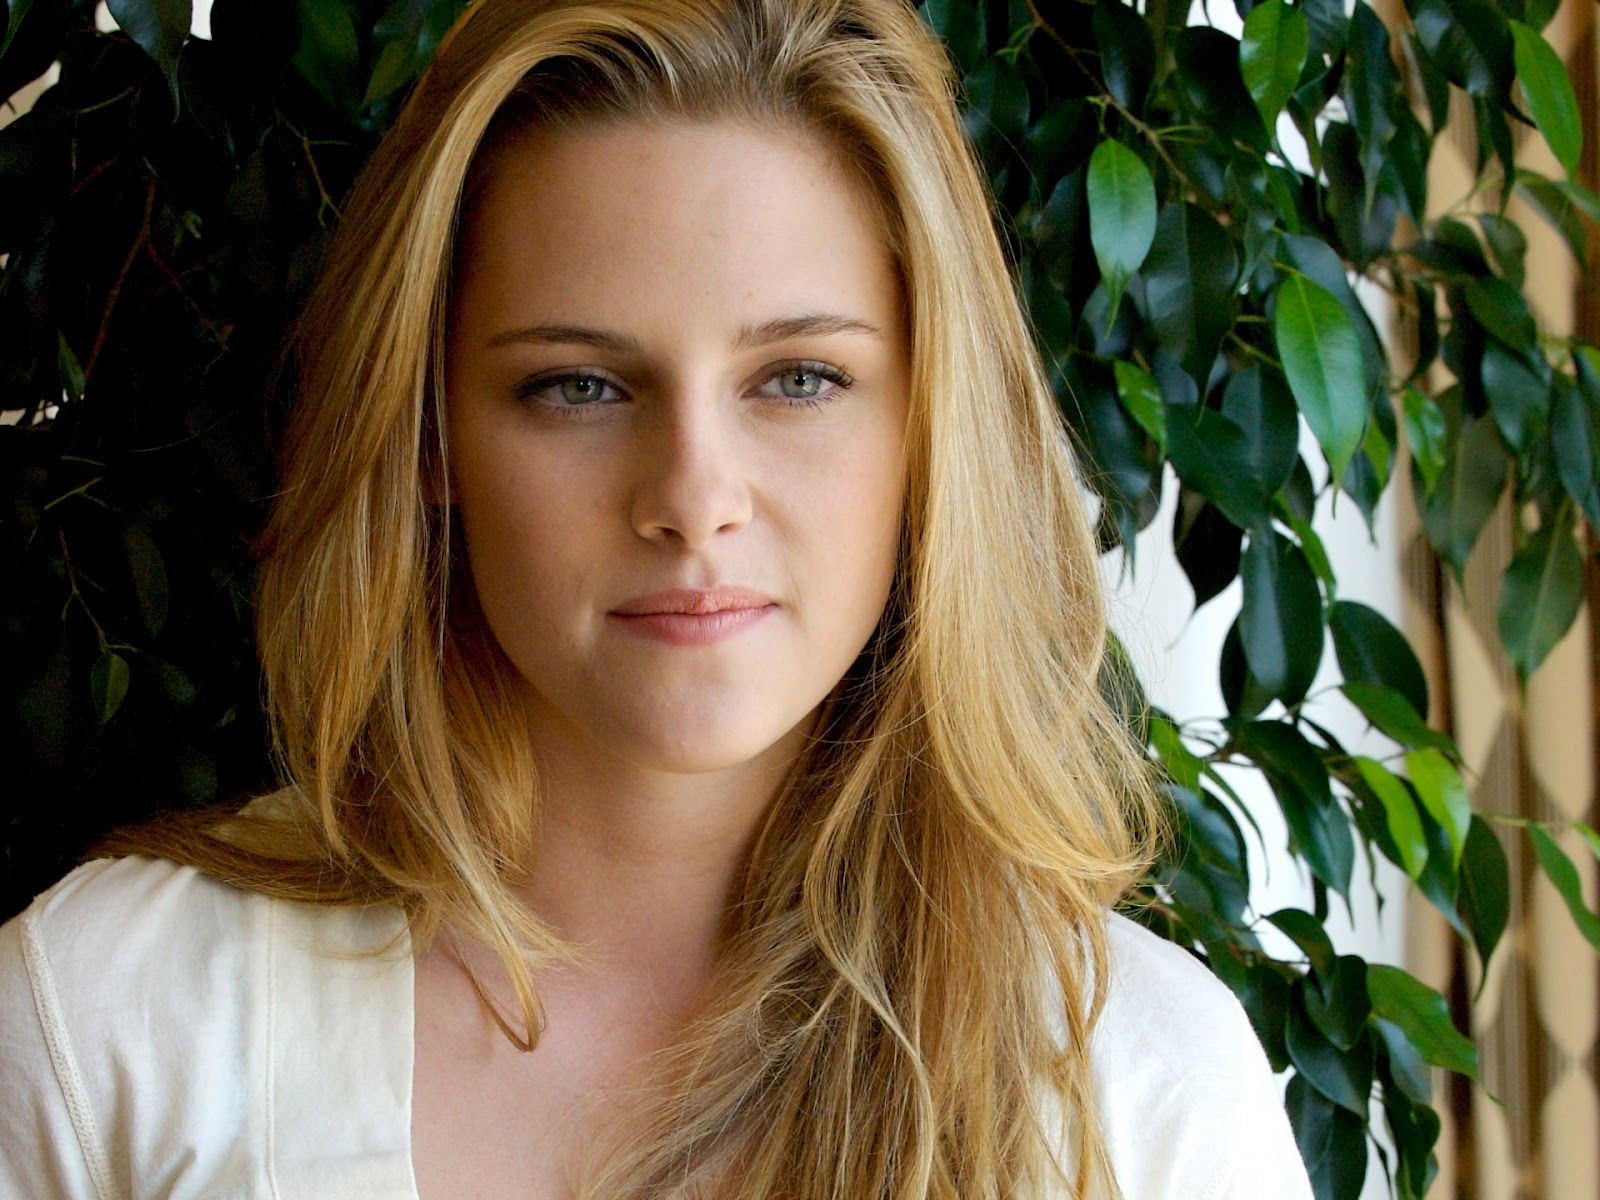 Cassie Wade  (Kristen Stewart is best to capture Cassie, especially here where she looks so real.  Again, a pretty girl-next-door face, but not painfully beautiful.  Darken her hair just a bit, and make her eyes brown.